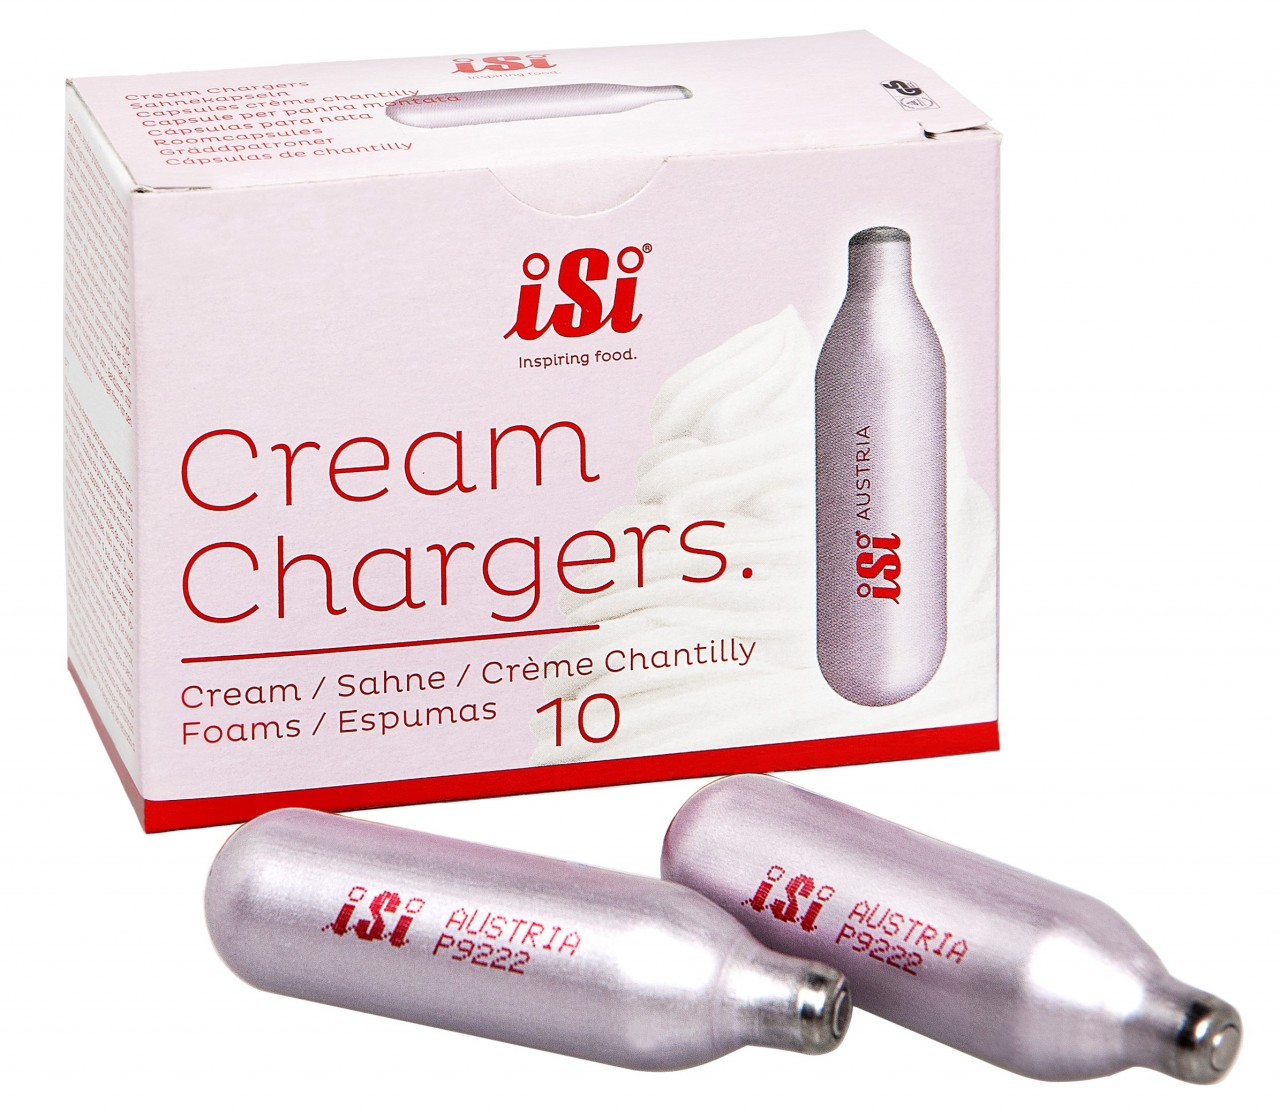 0087isi_cream_charger_10_pieces_lowjpg